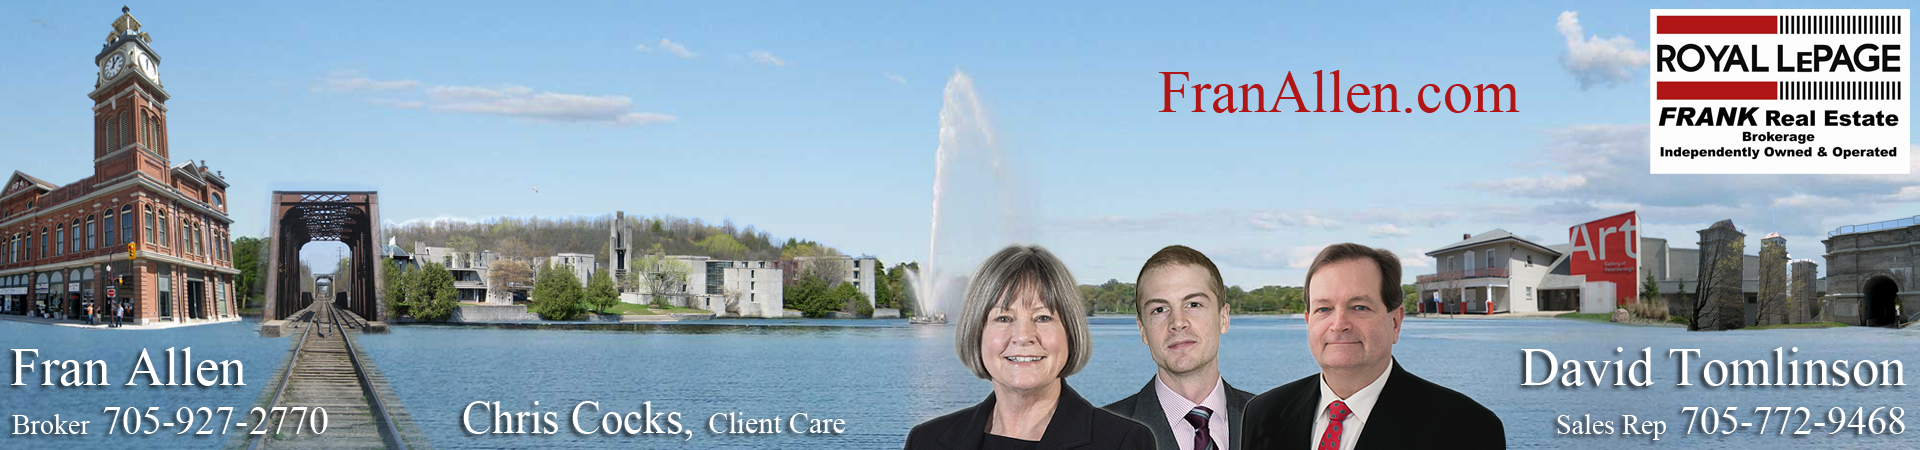 Fran Allen & David Tomlinson - Royal LePage FRANK Real Estate